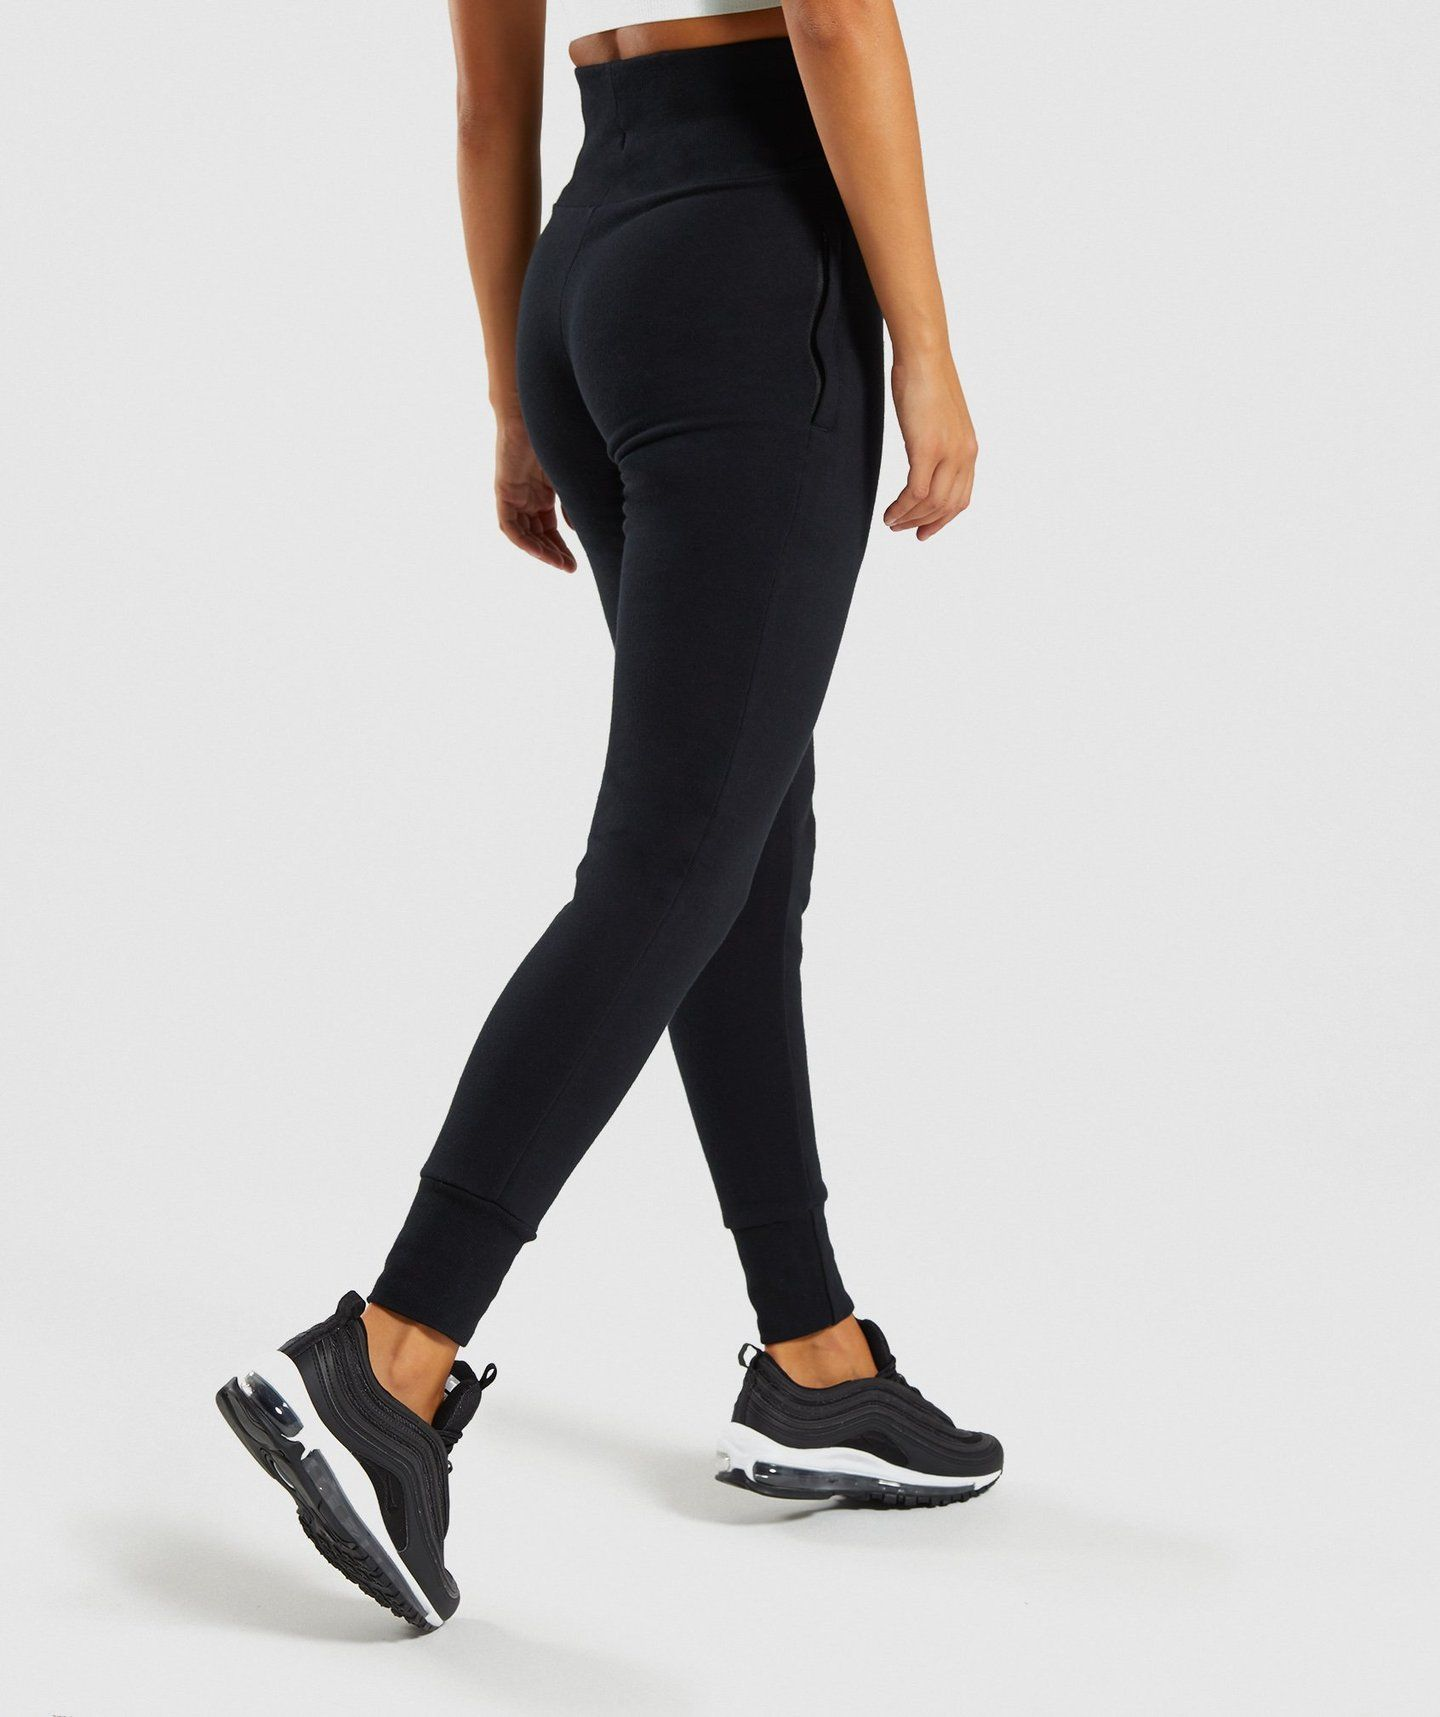 425c0513d130b Gymshark High Waisted Joggers - Black in 2019 | wk out clothes ...